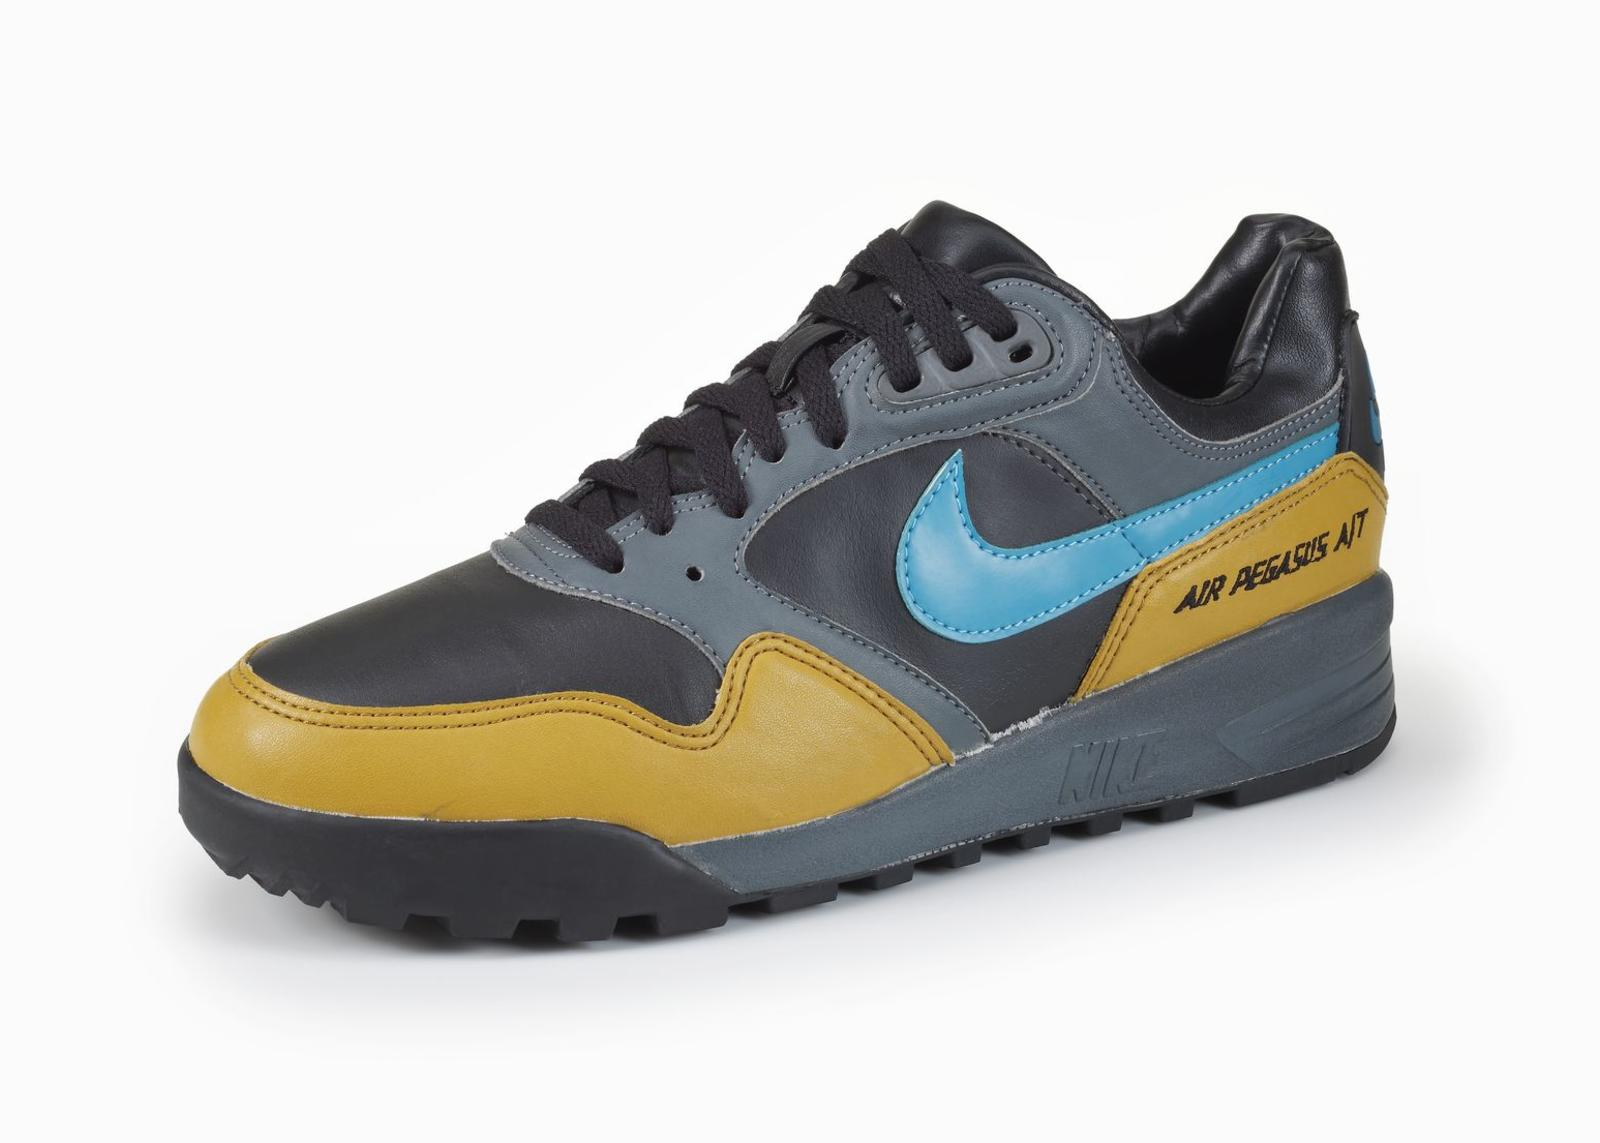 Nike Air Pegasus AT 1991